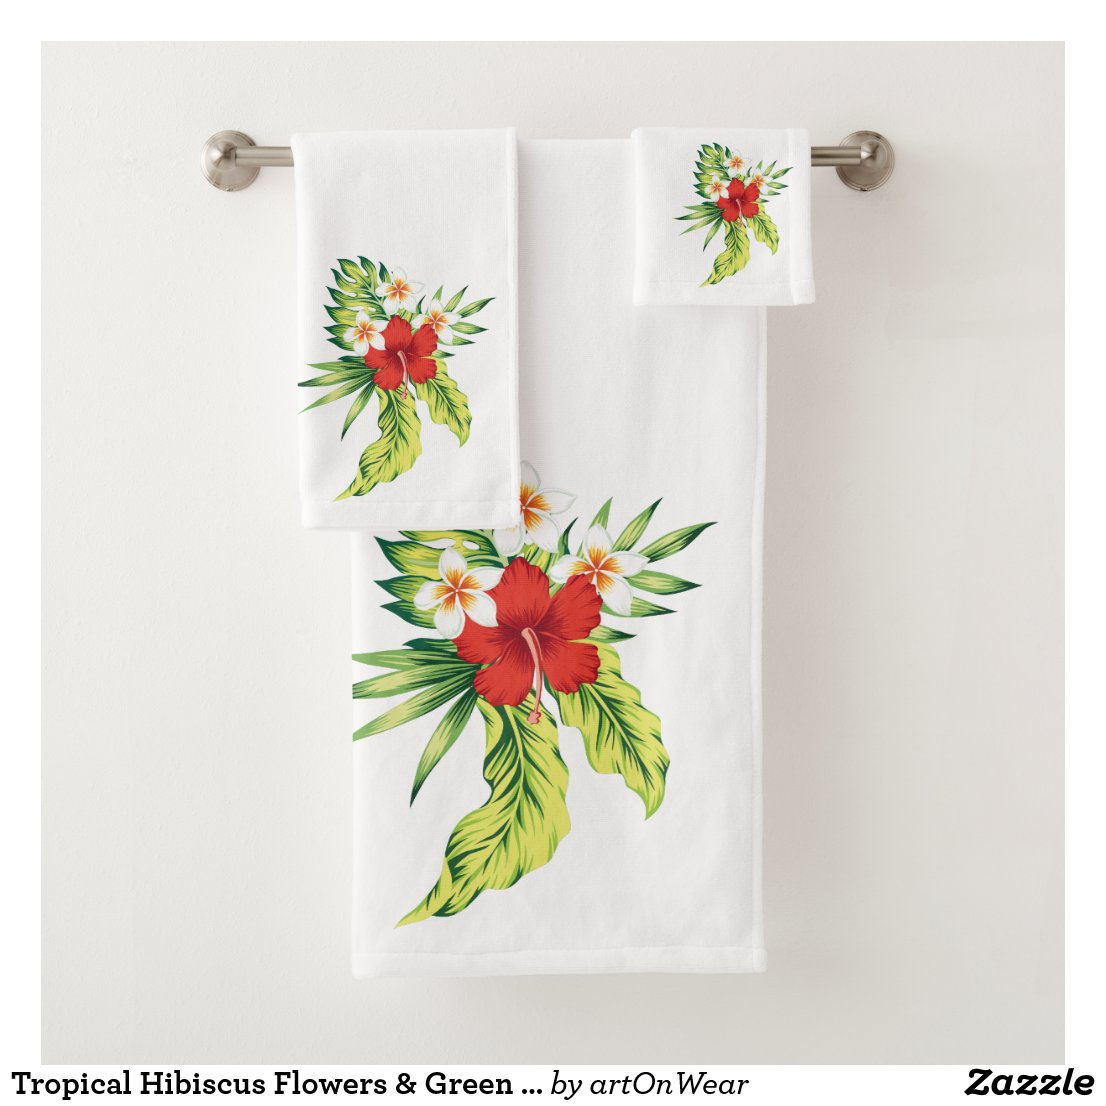 Tropical Hibiscus Flowers & Green Leafs Bouquet